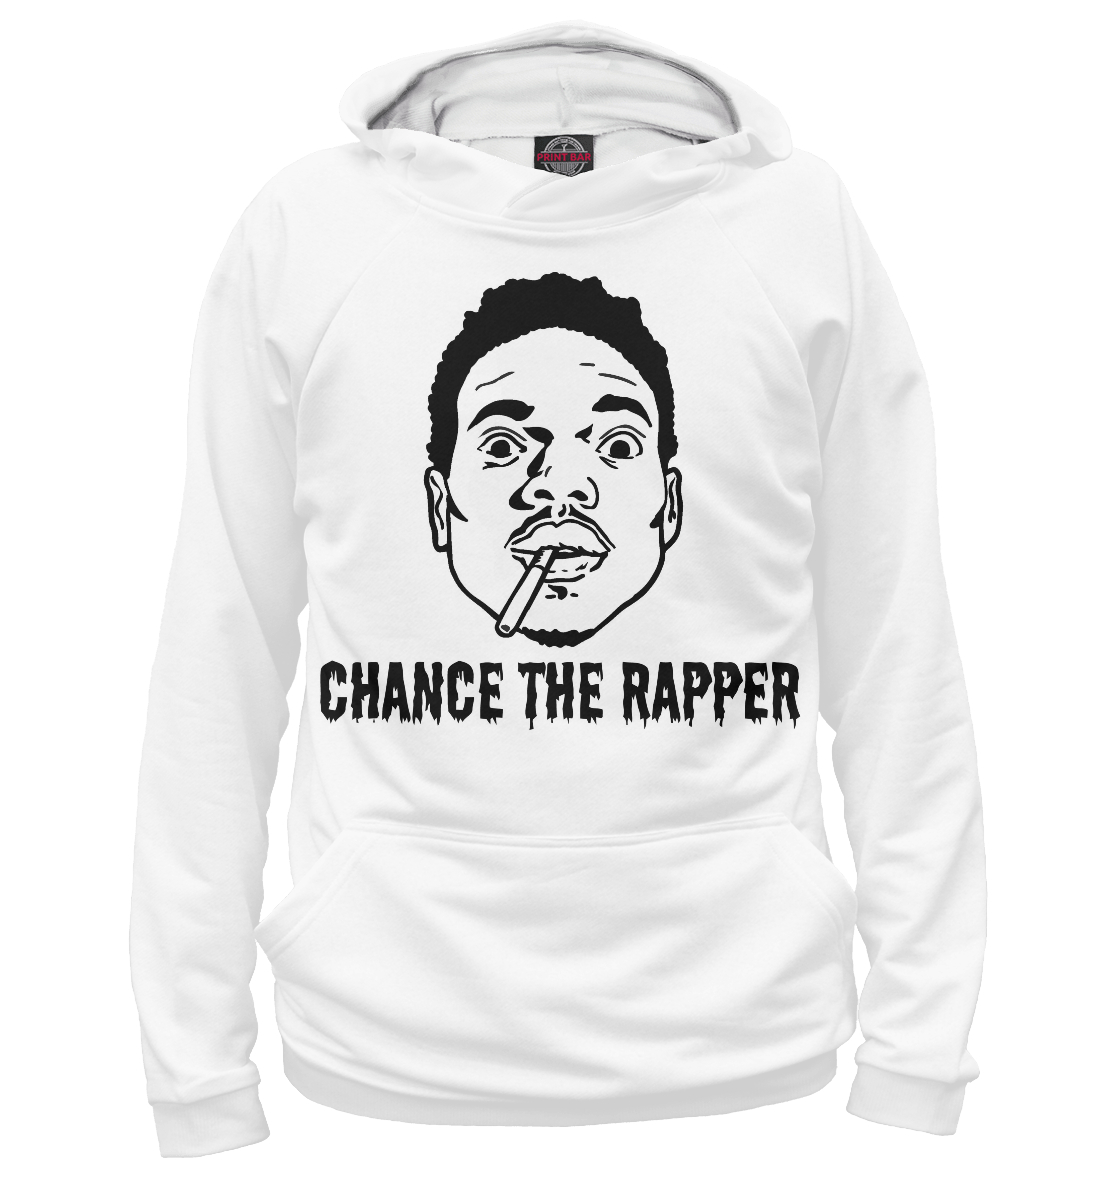 Купить Chance The Rapper, Printbar, Худи, MZK-105548-hud-1